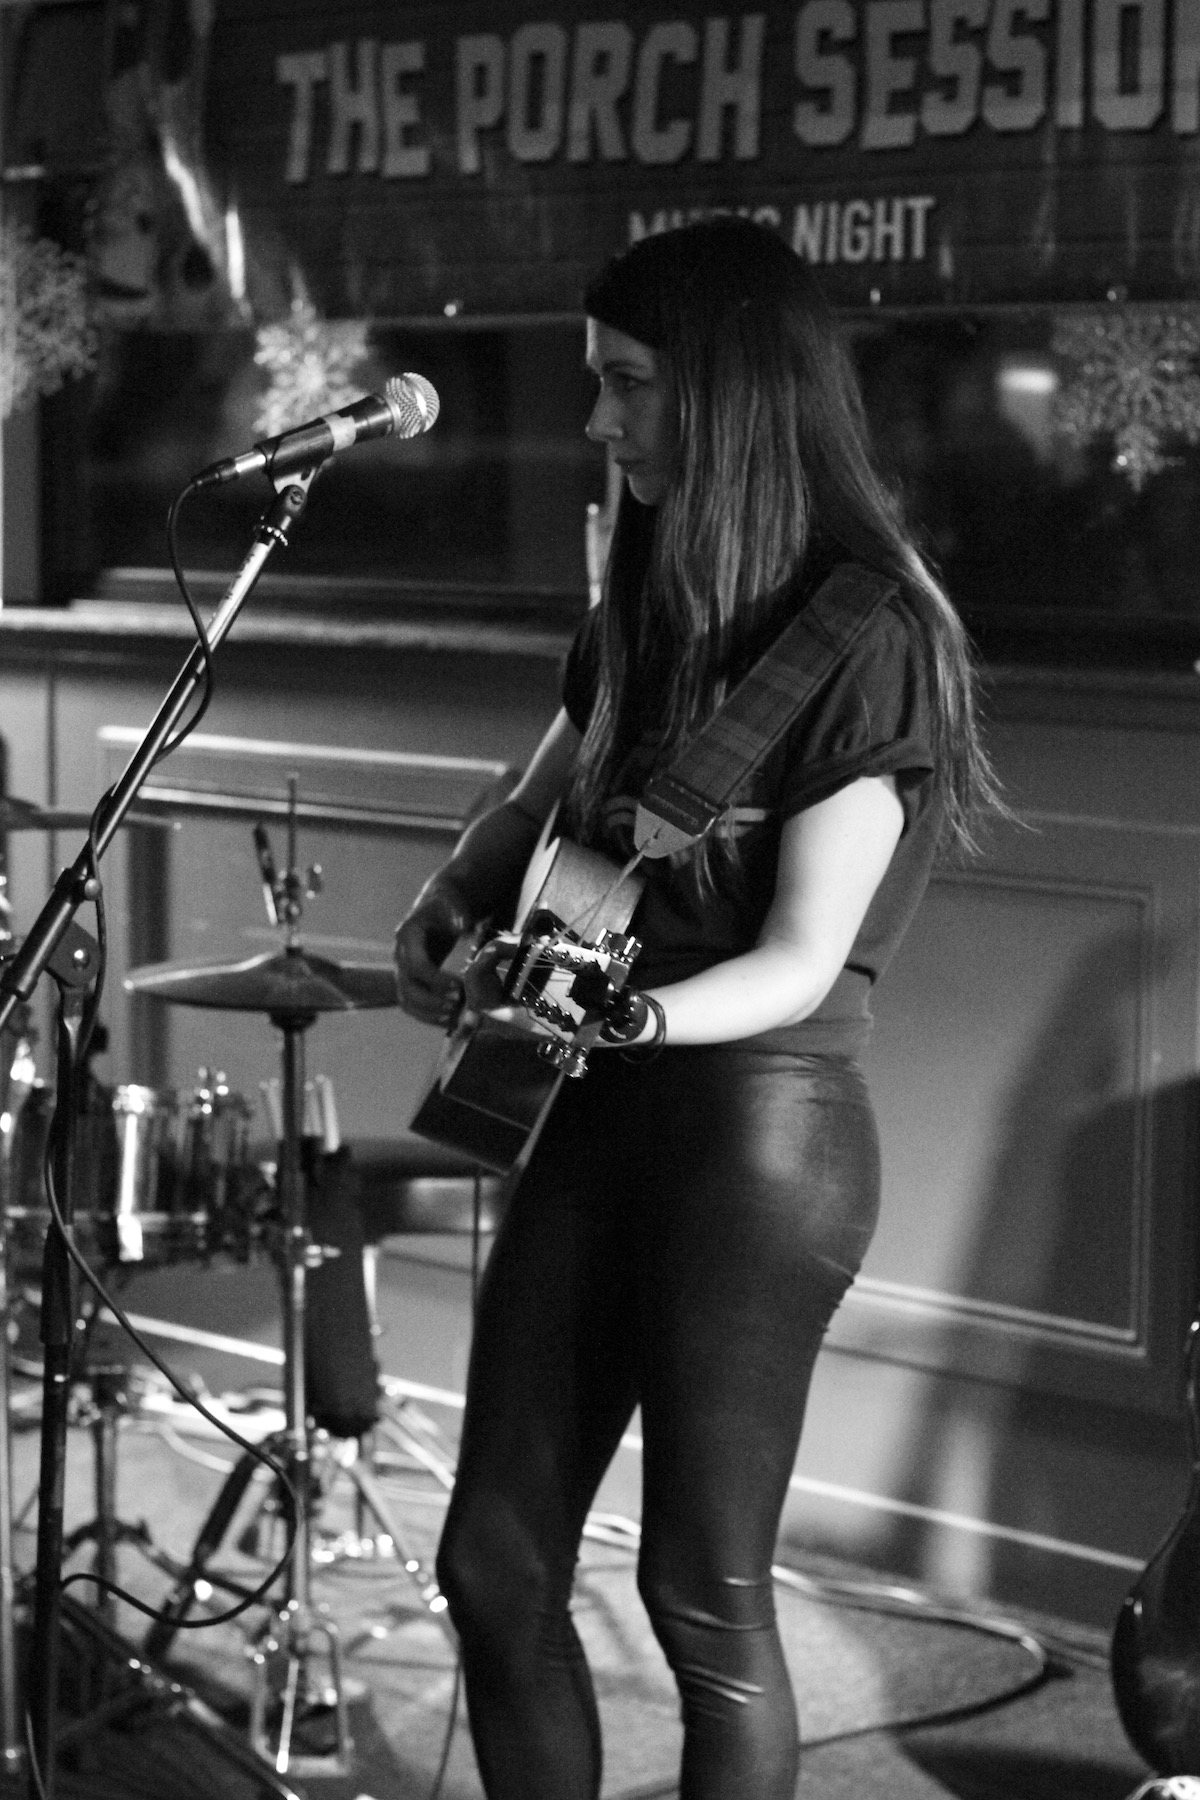 Lauren MacKenzie at The Porch Sessions Inverness December 20183055 - The Porch Sessions, 8/12/2018 - Images